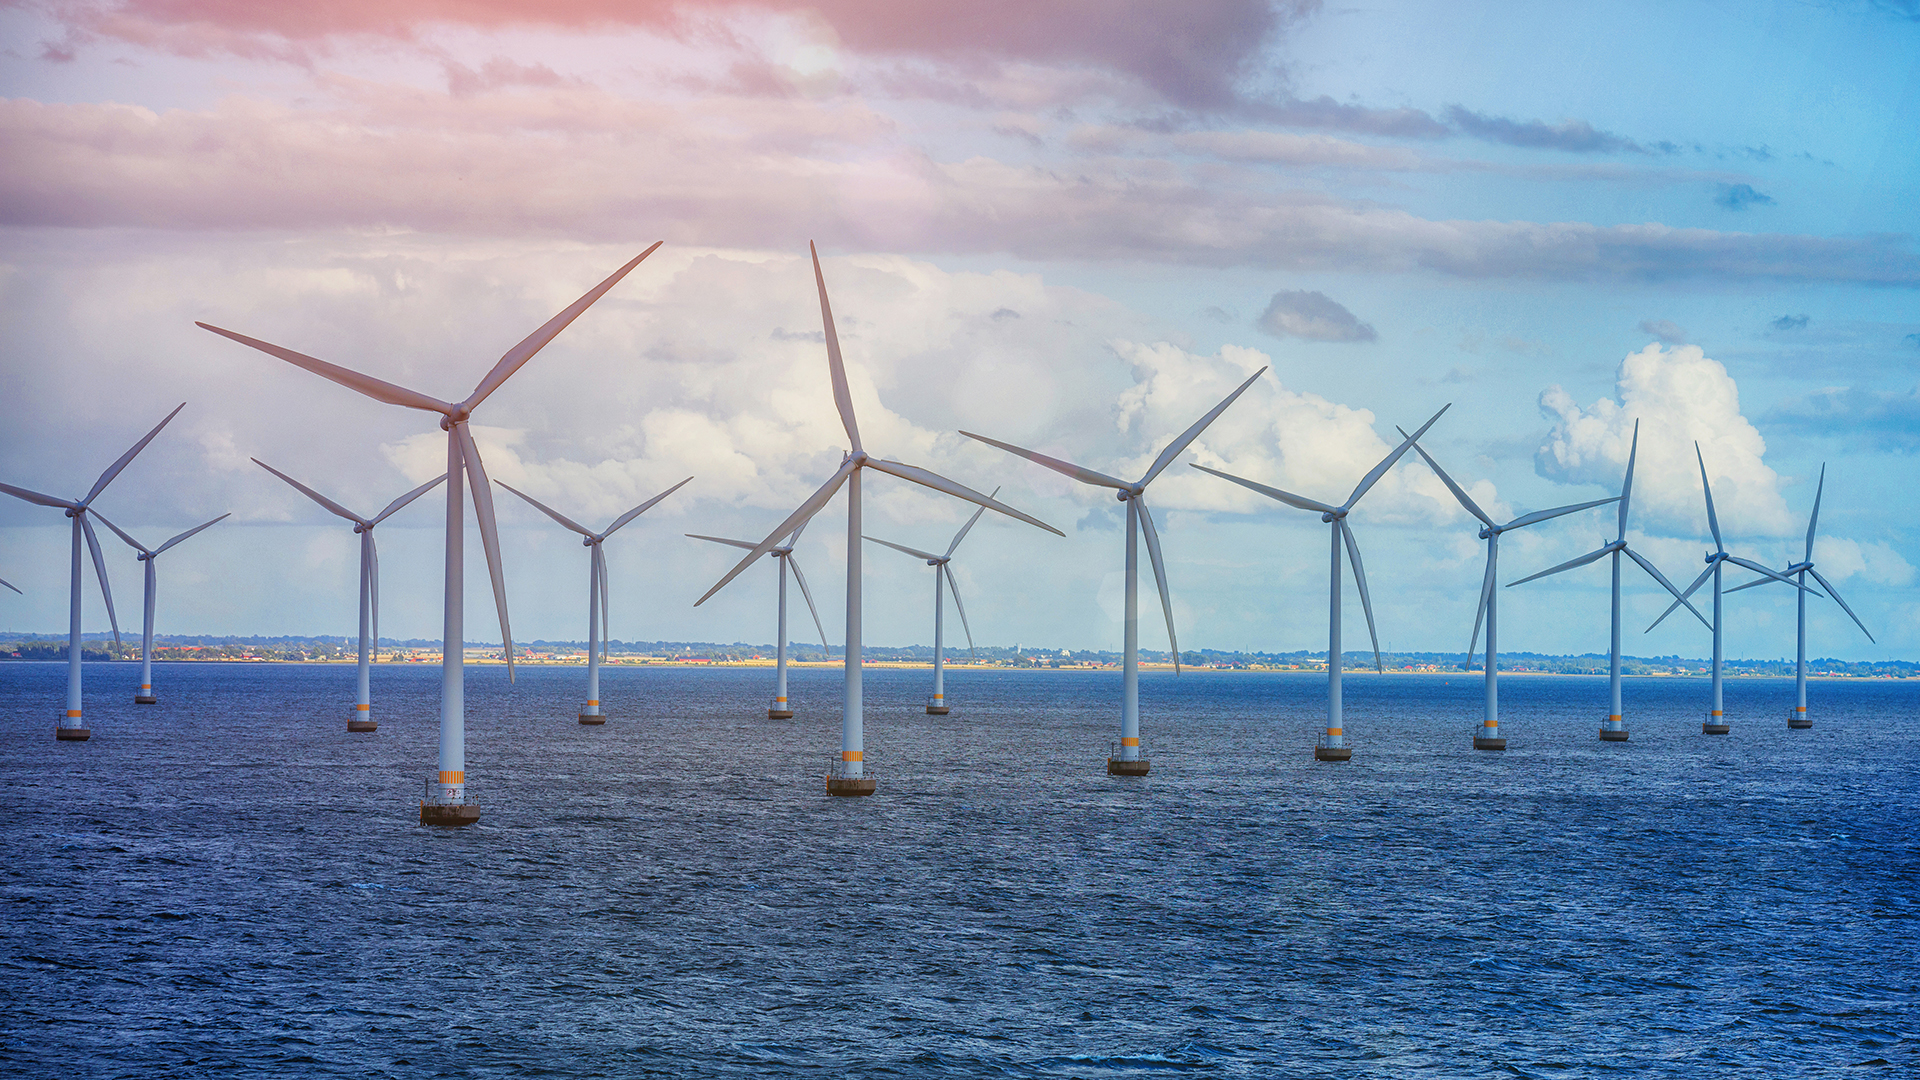 Energy windfarm at sea